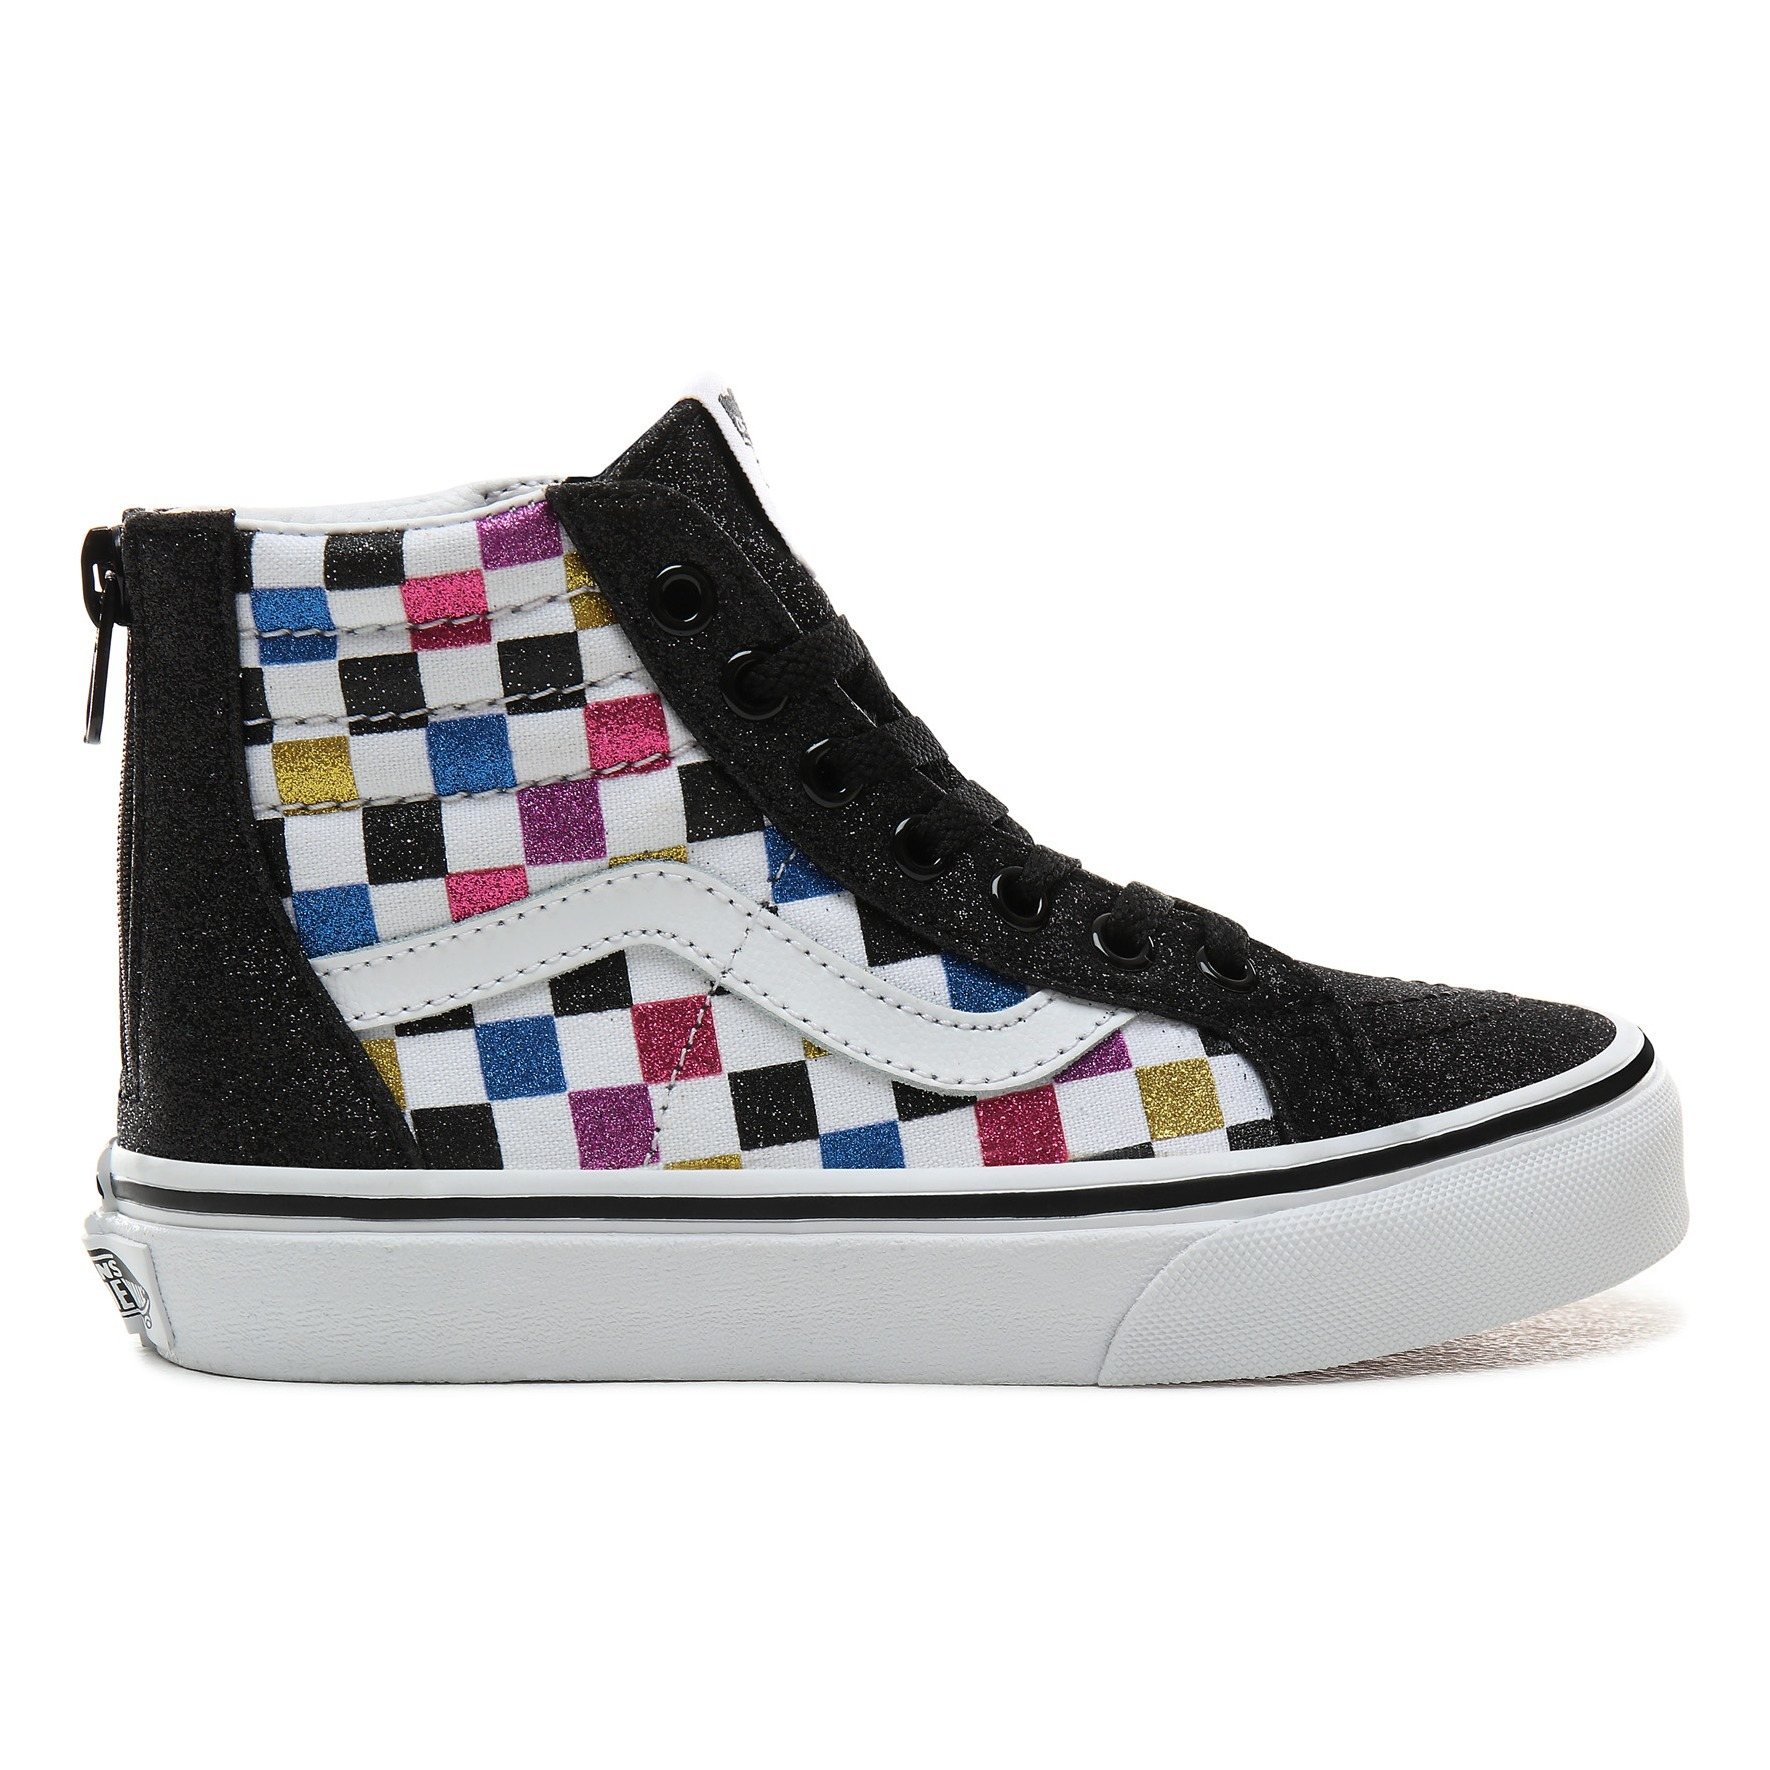 Newborn Shoes Vans Sk8 Hi Glitter And Suede Zipper Hi Top Trainers Black Vans Shoes